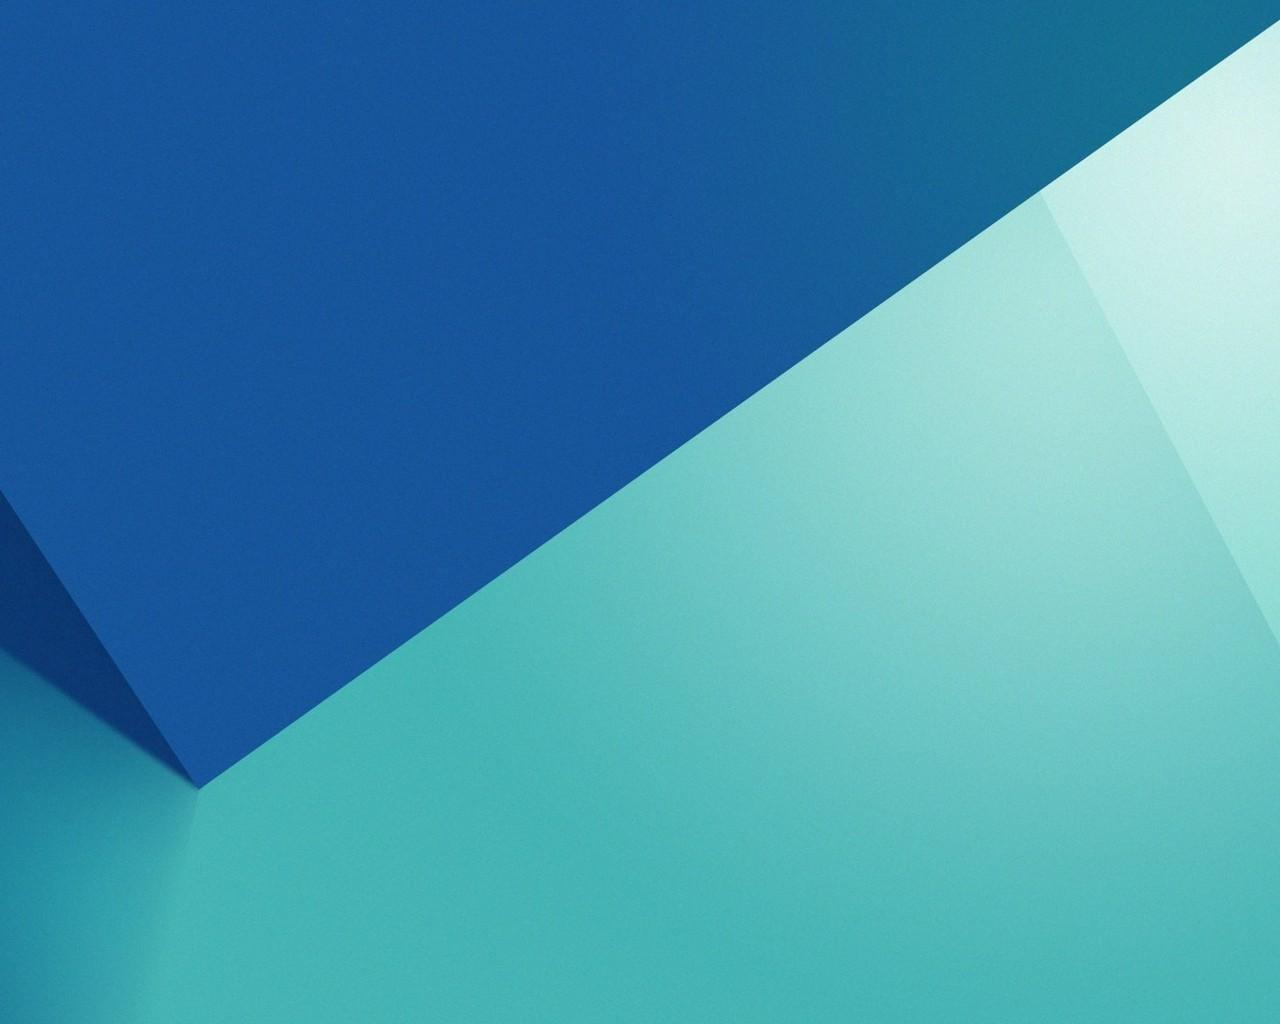 Material Design Hd Theme Pack Wallpapers For Android Apk